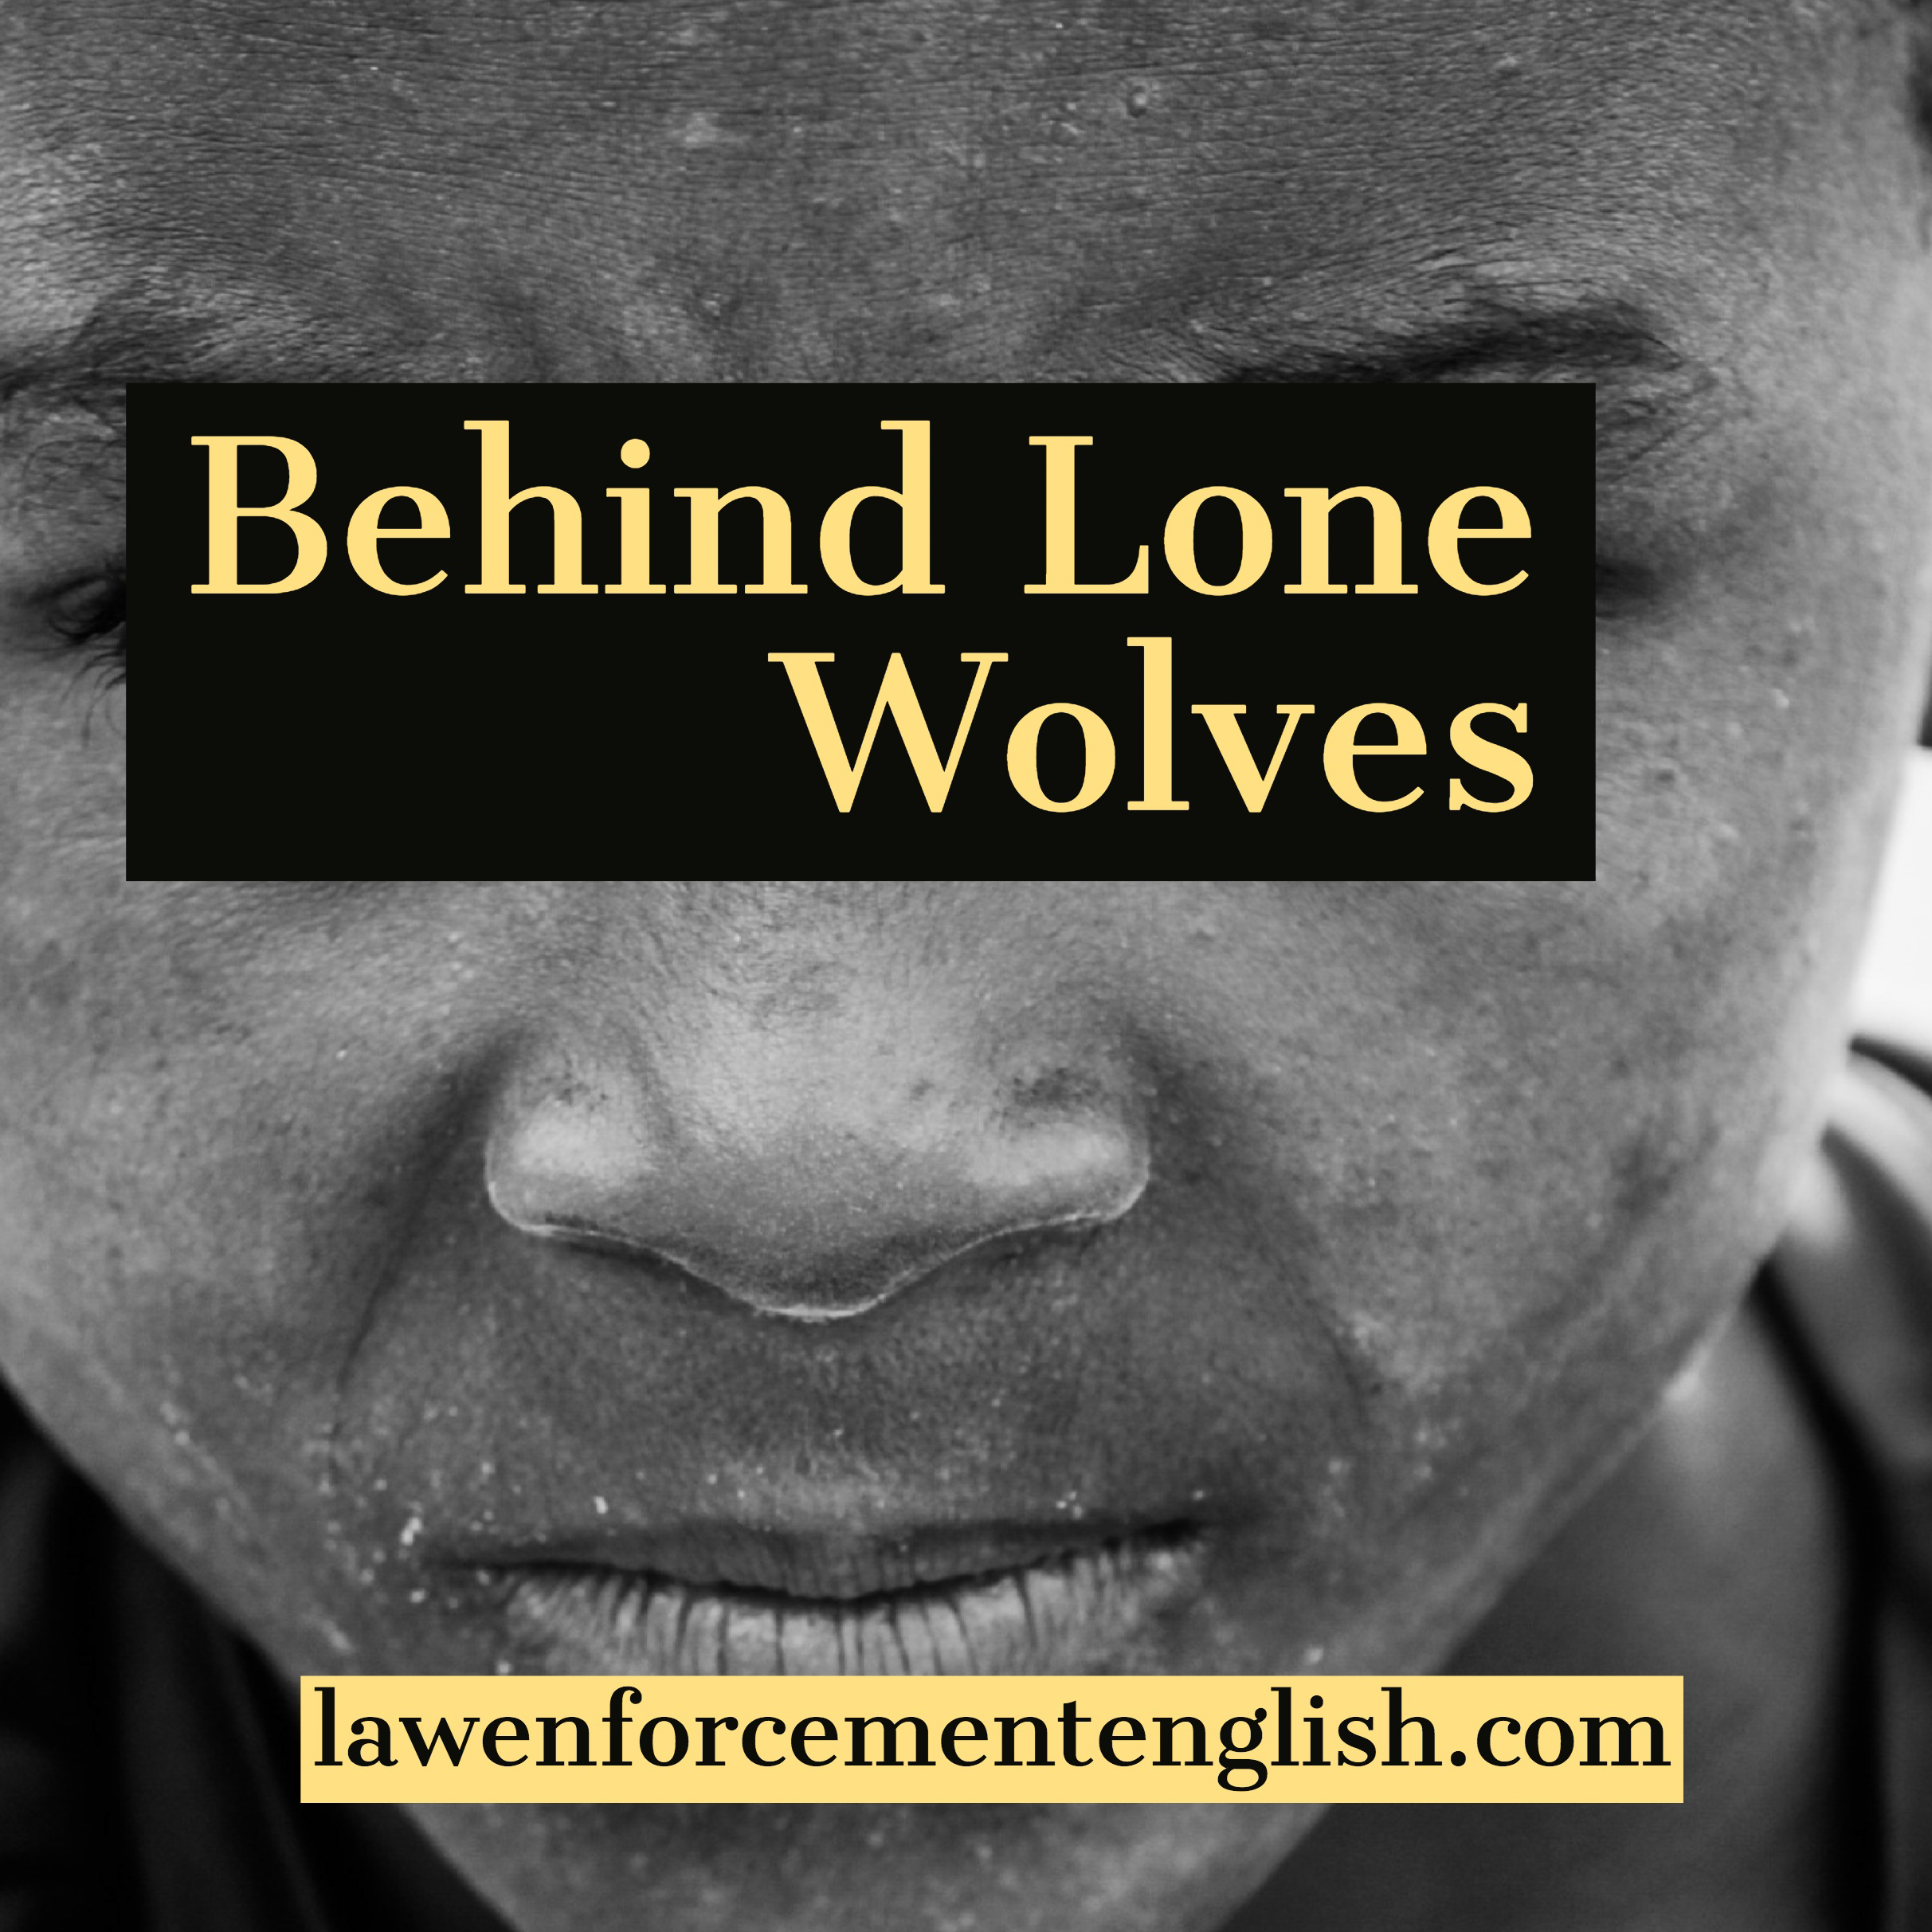 Behind Lone Wolves